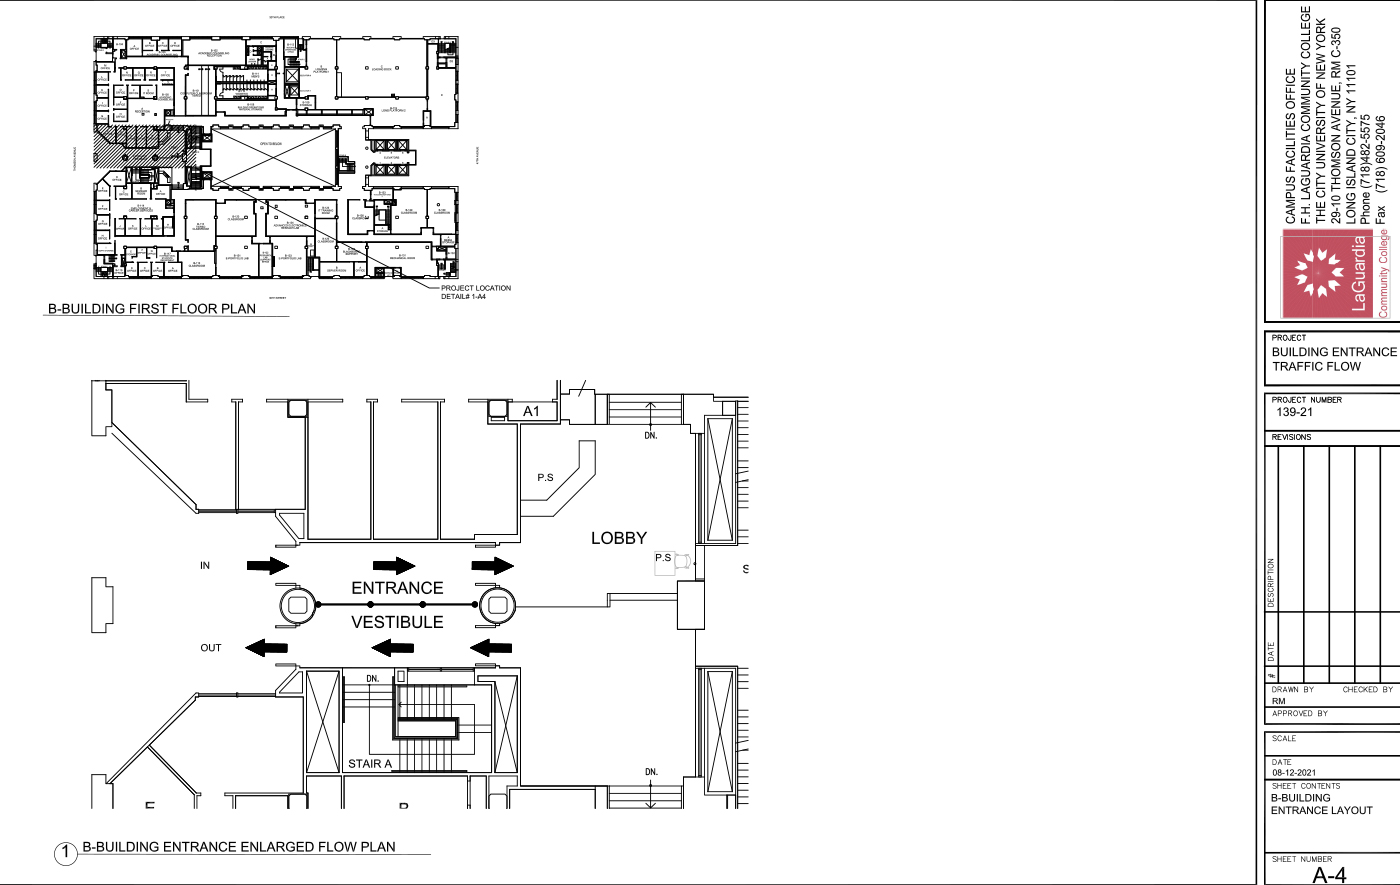 LaGuardia's campus facilities office_center III 3rd floor classroom layout